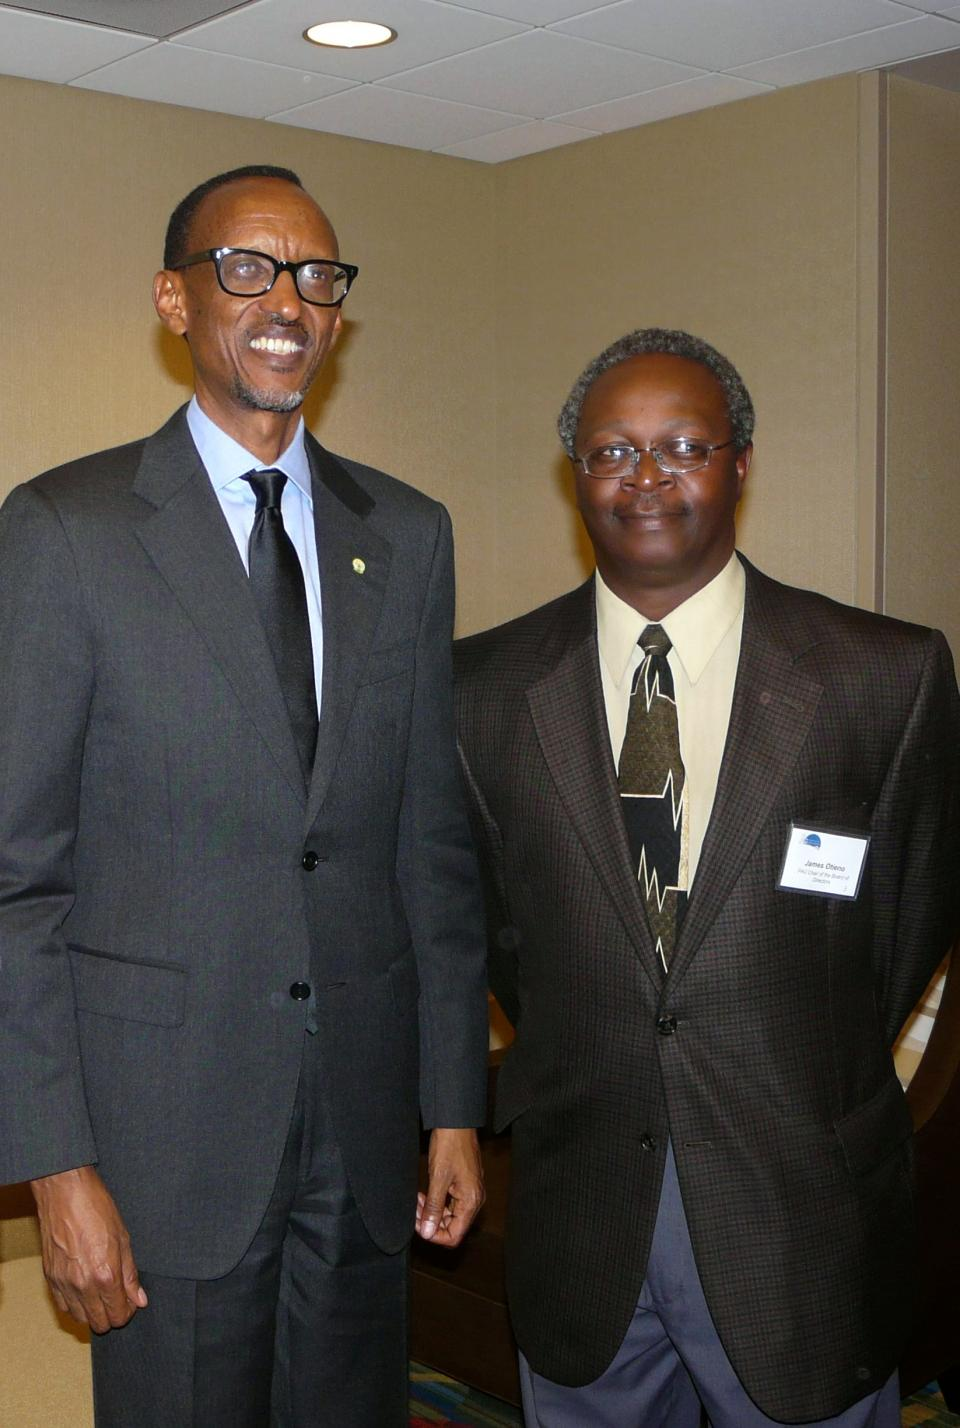 James Otieno with Rwandan President Paul Kagame